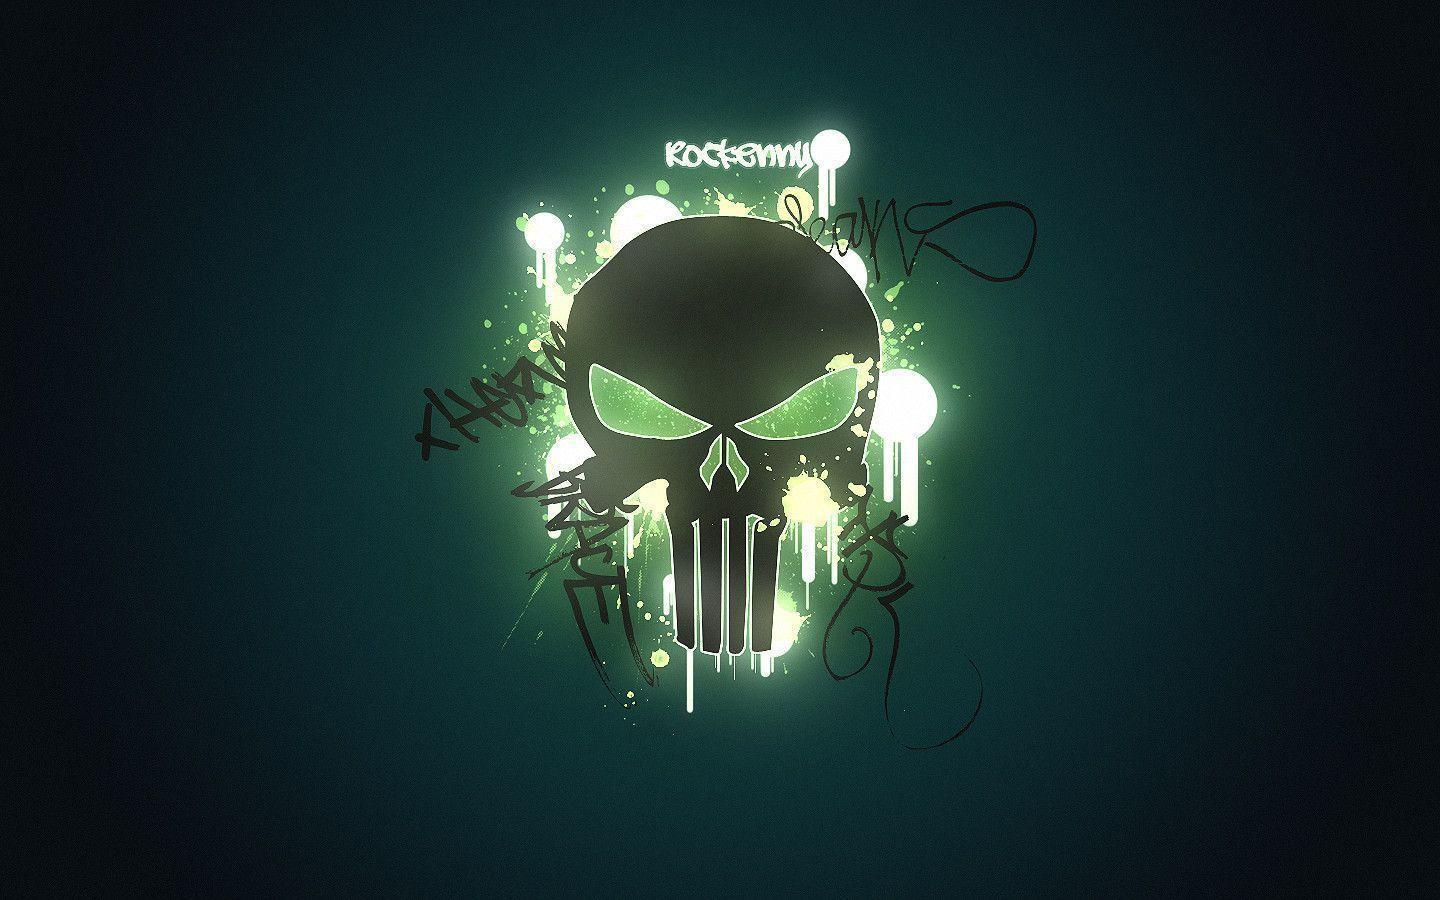 Hd Skull Wallpaper 15240 Wallpapers | hdesktopict.